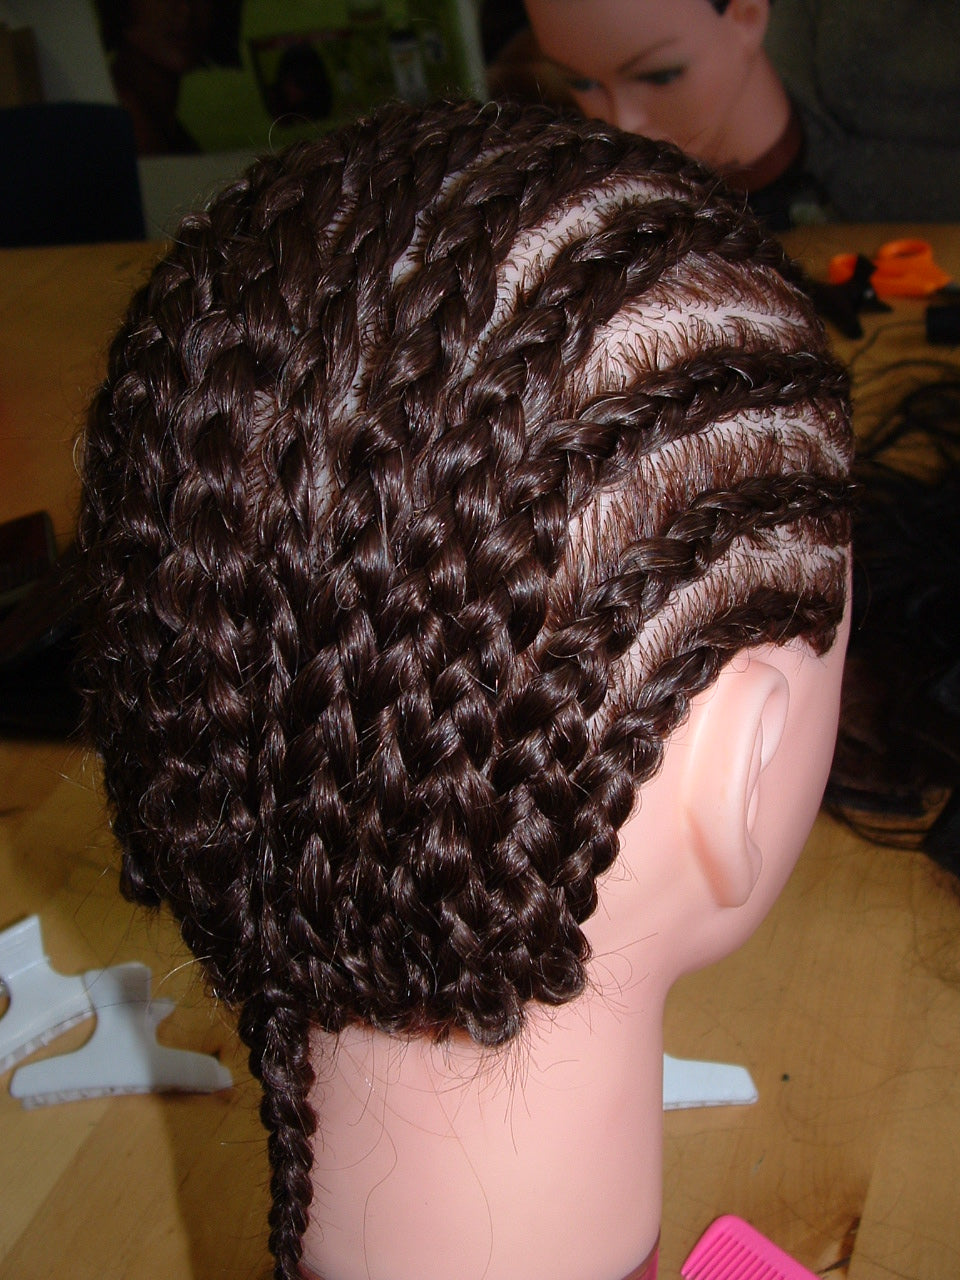 Braiding 101 Workshop